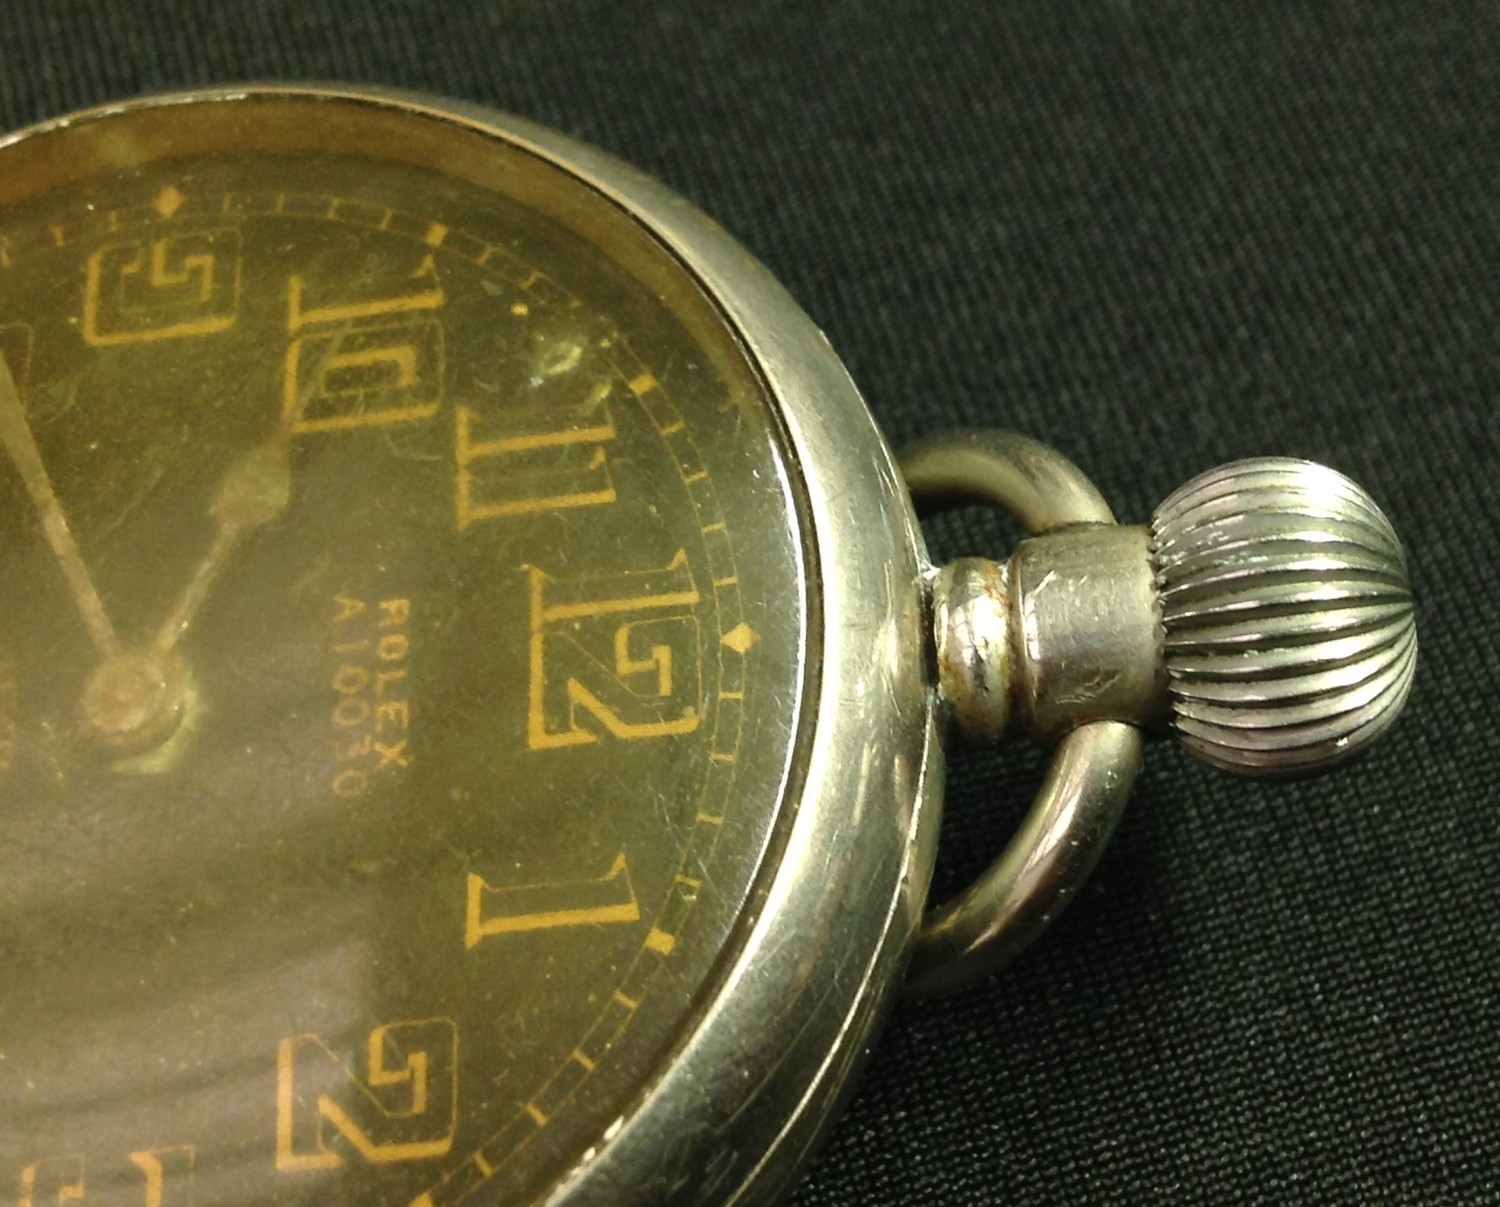 WW2 'Military' style private purchase Rolex A10030 open faced pocket watch, black enamel dial gold - Image 8 of 10